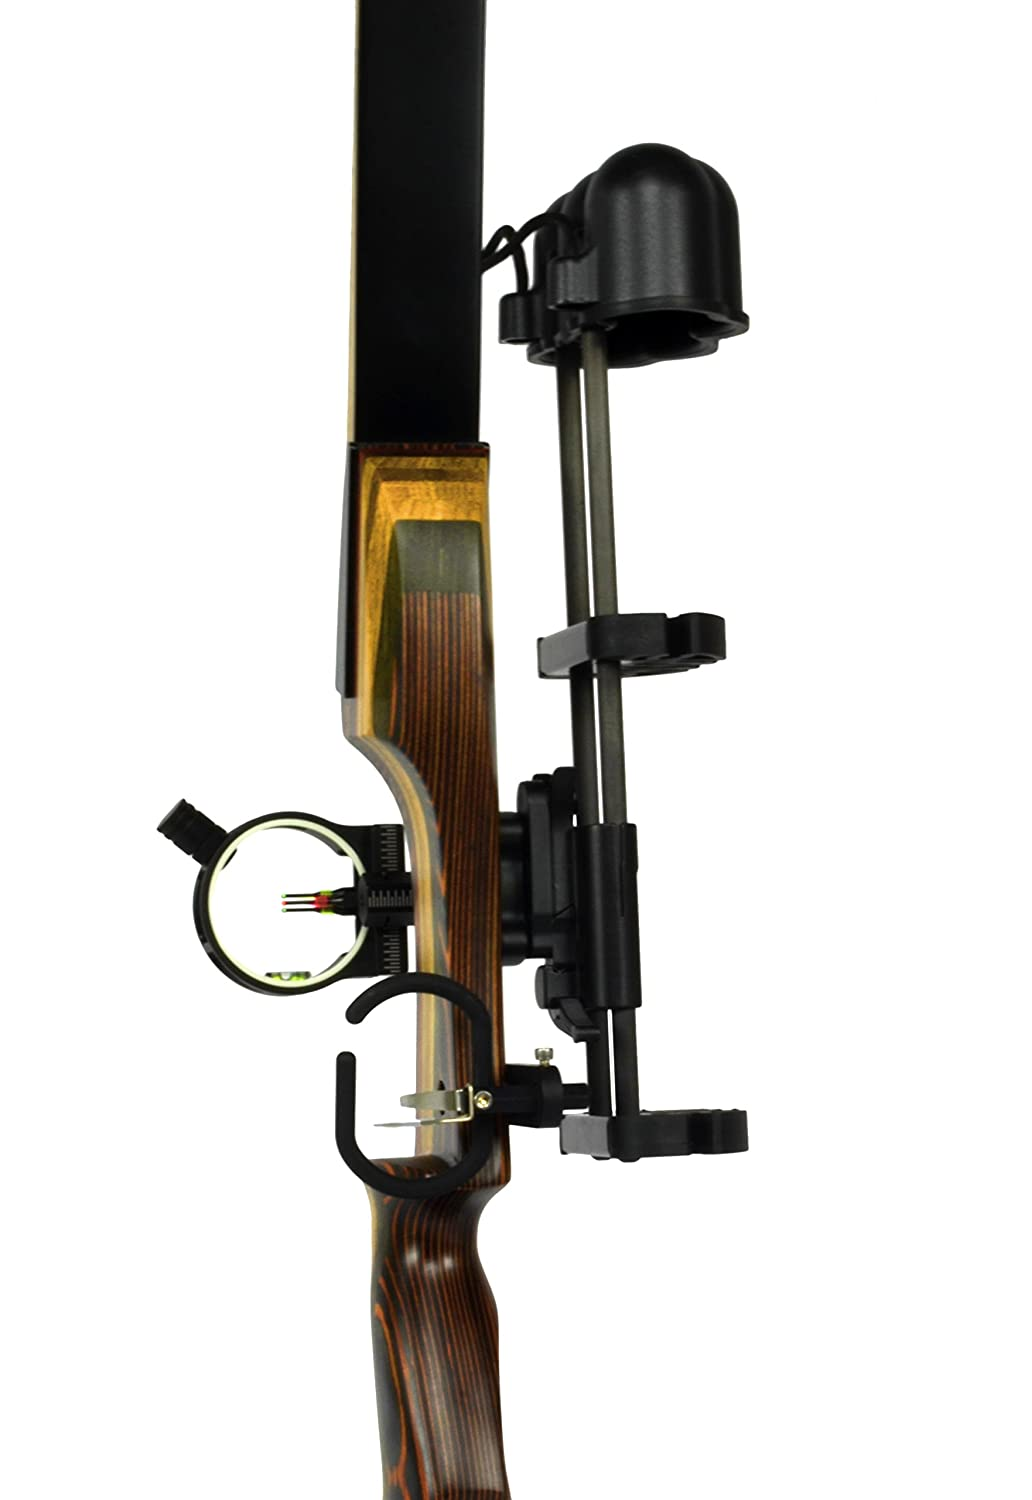 Universal Recurve Bow Hunting Kit - Includes 3 Pin sight with light, 5 arrow quick detach quiver & Premium arrow rest, designed for Samick Sage and Southwest Archery Spyder AAE; Truglo